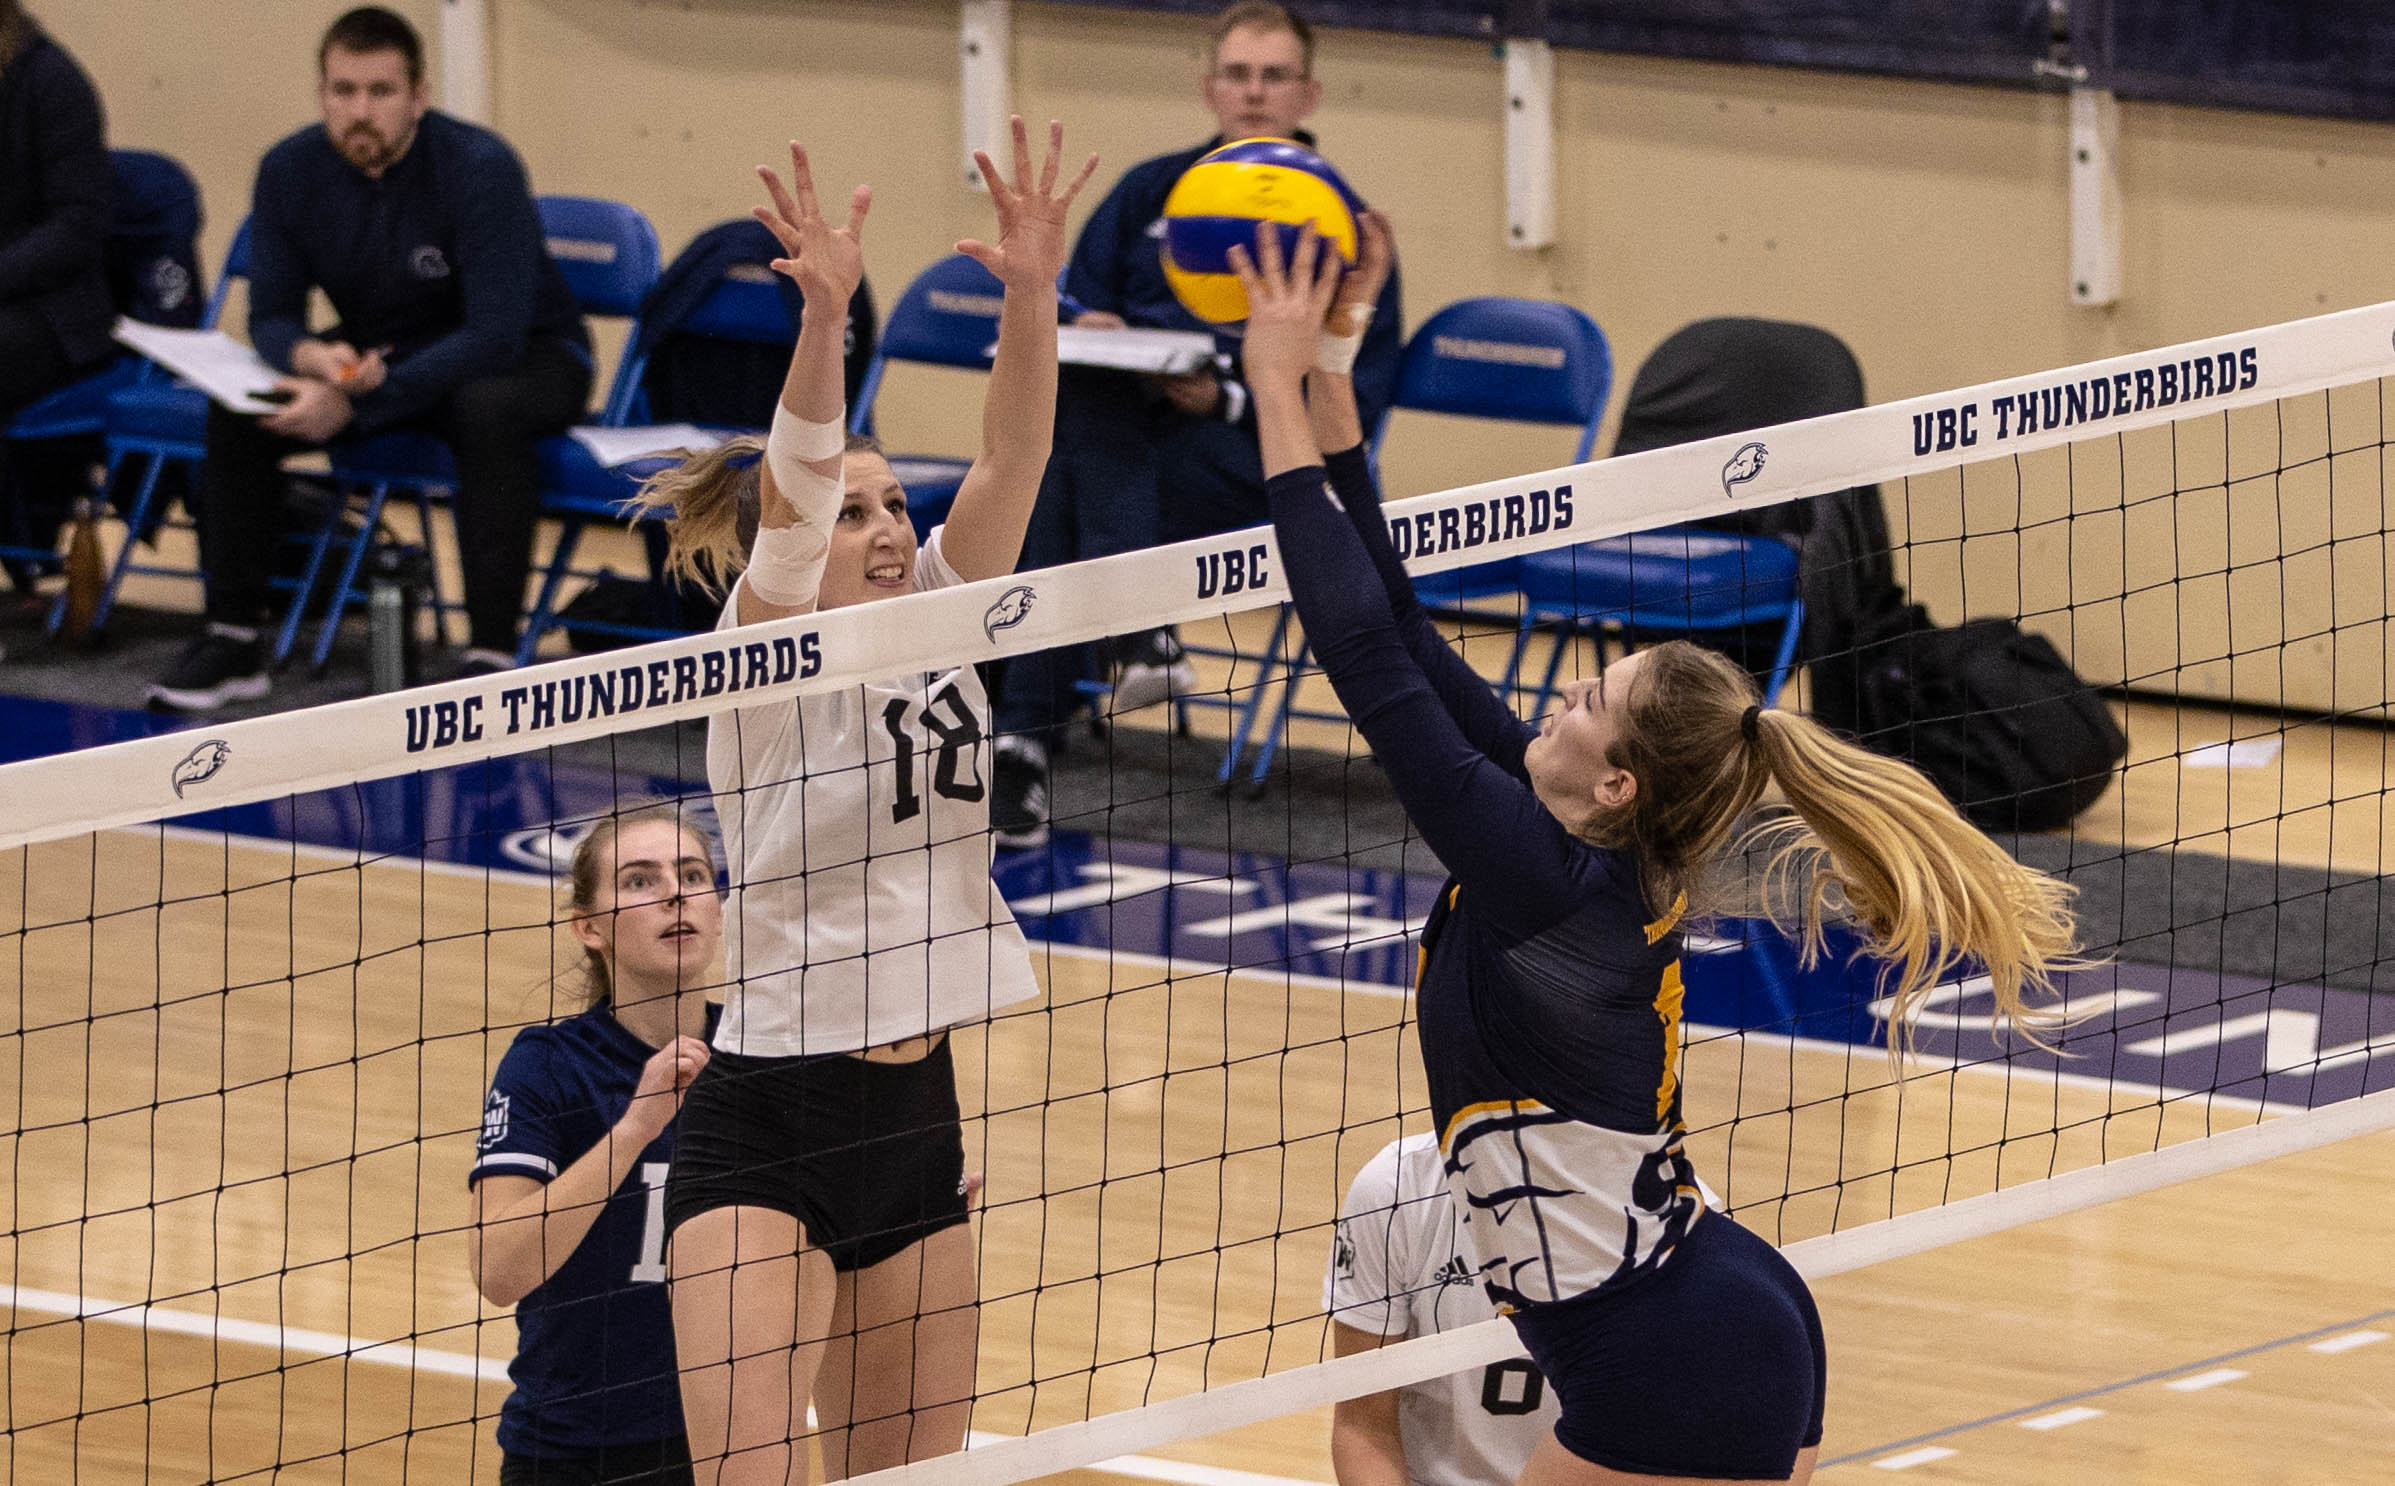 After suffering a double defeat to Trinity Western last week, the T-Birds rebounded against Regina.